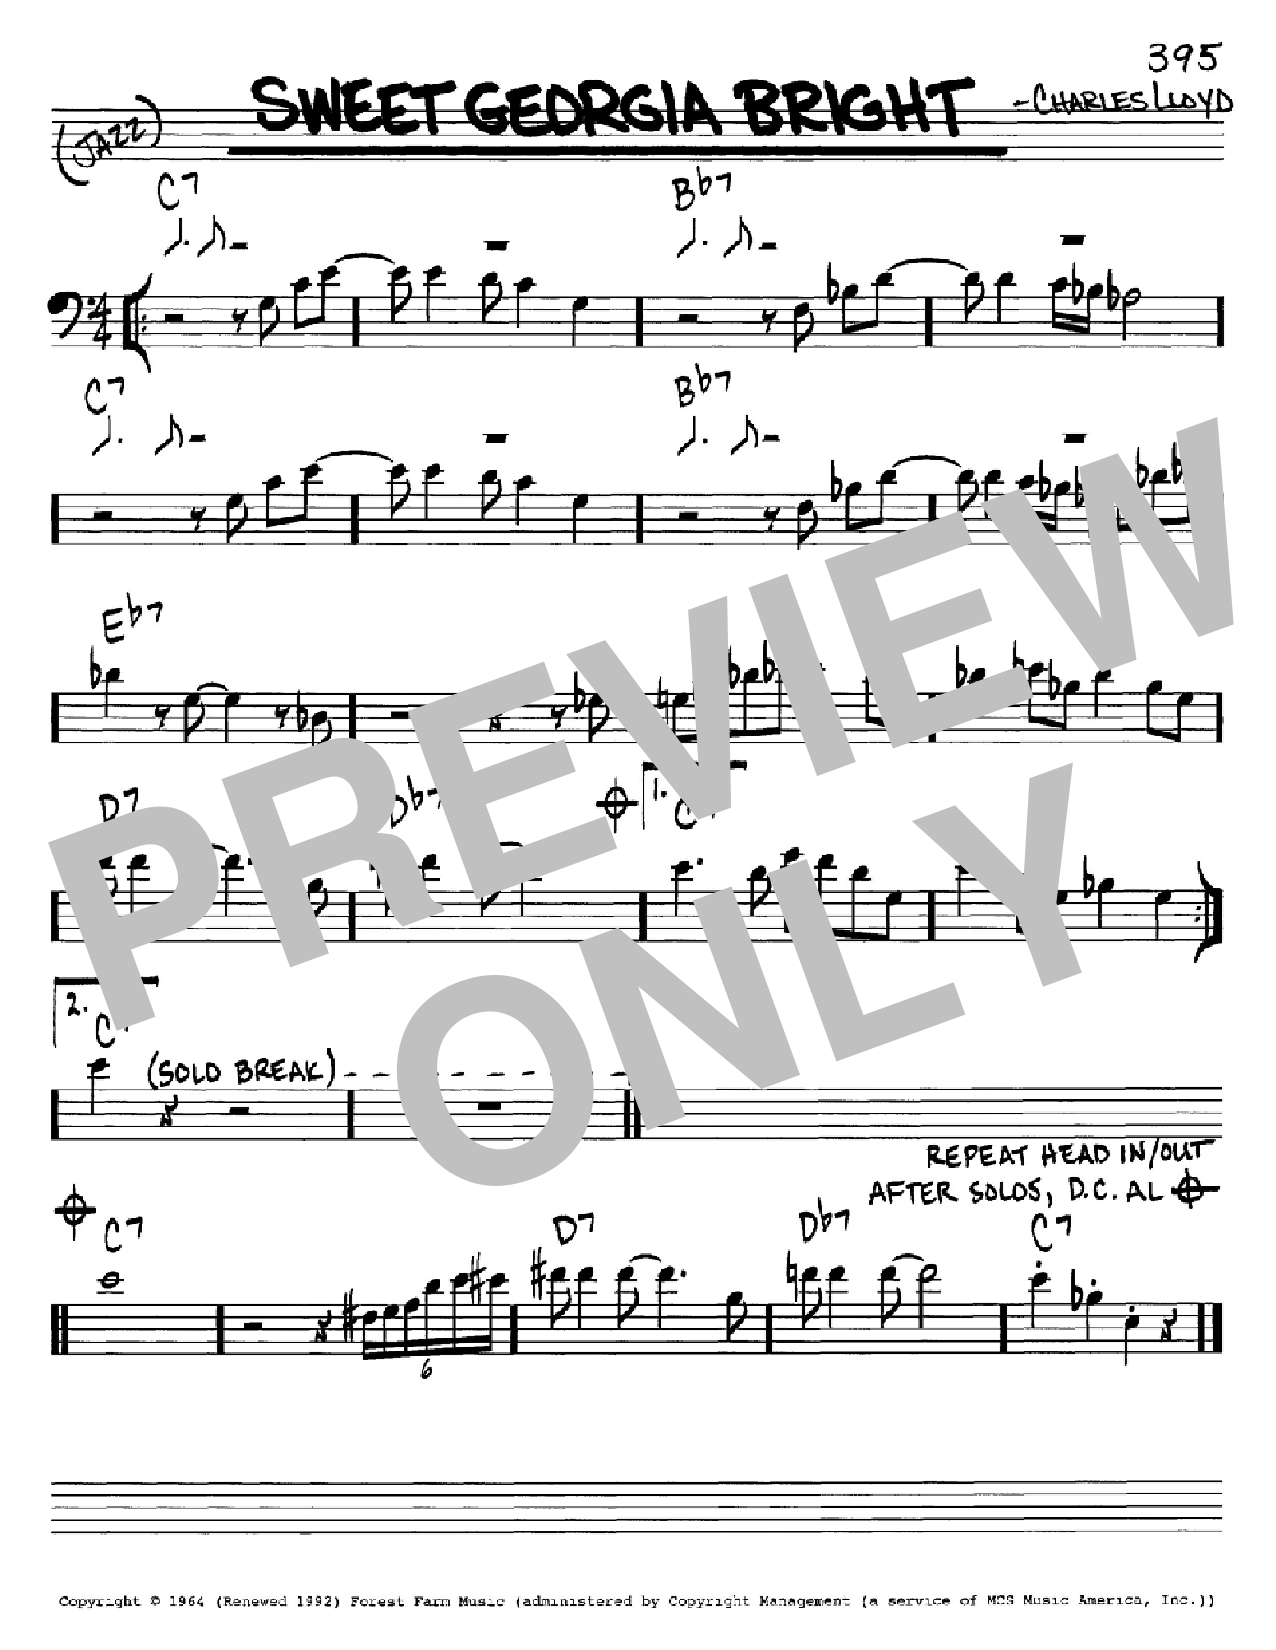 Sweet Georgia Bright Sheet Music